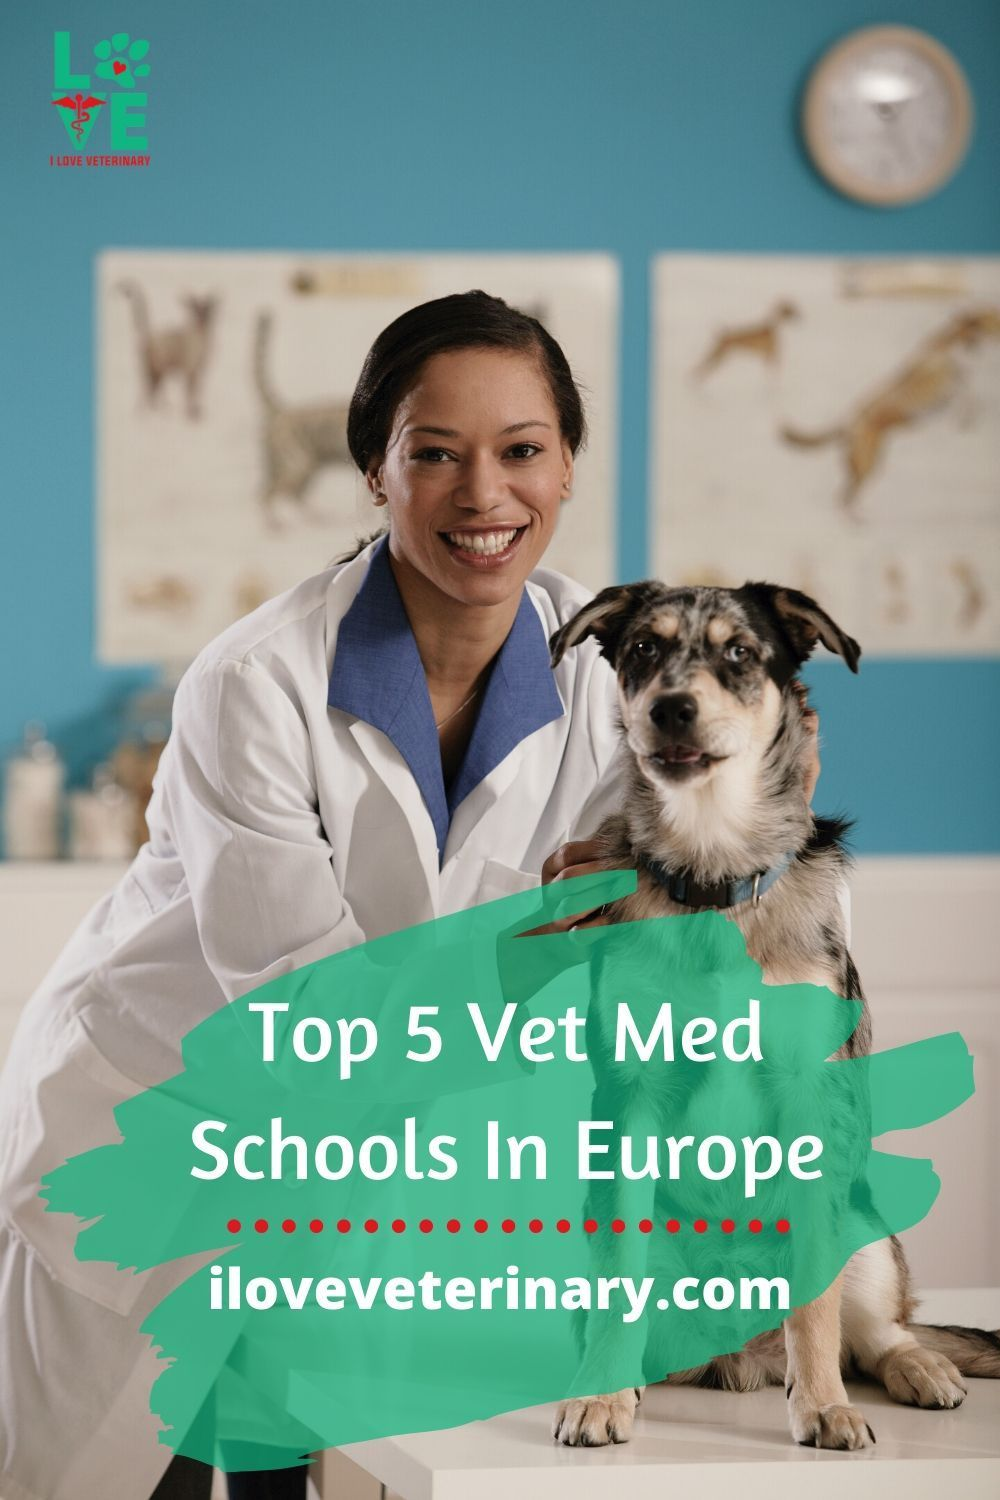 Top 5 Vet Med Schools In Europe I Love Veterinary Vet Med Animal Doctor Vet Assistant